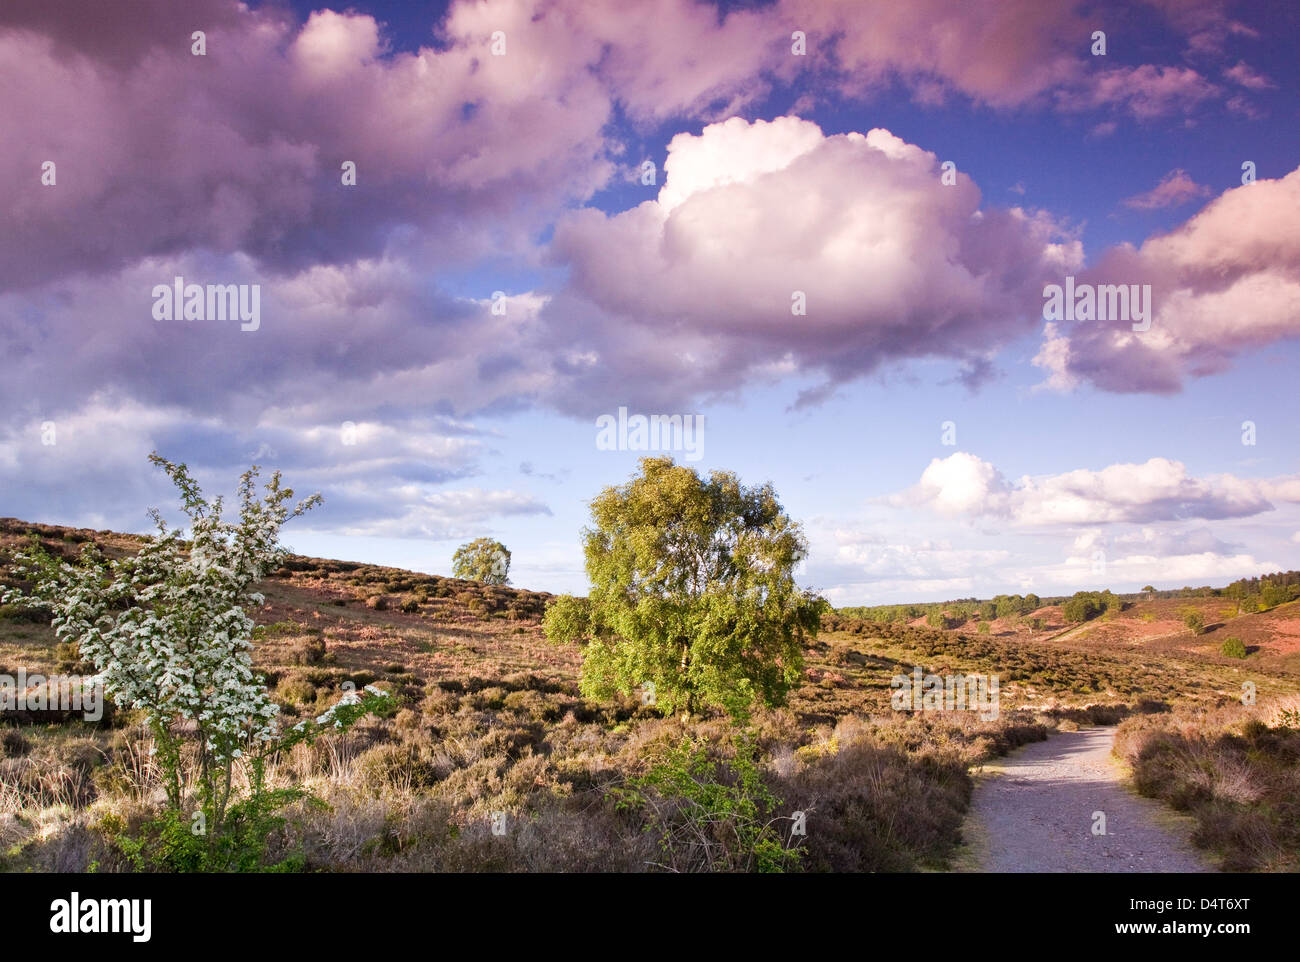 Foot path trees heathland hills on Cannock Chase Country Park AONB (area of outstanding natural beauty) in Staffordshire - Stock Image